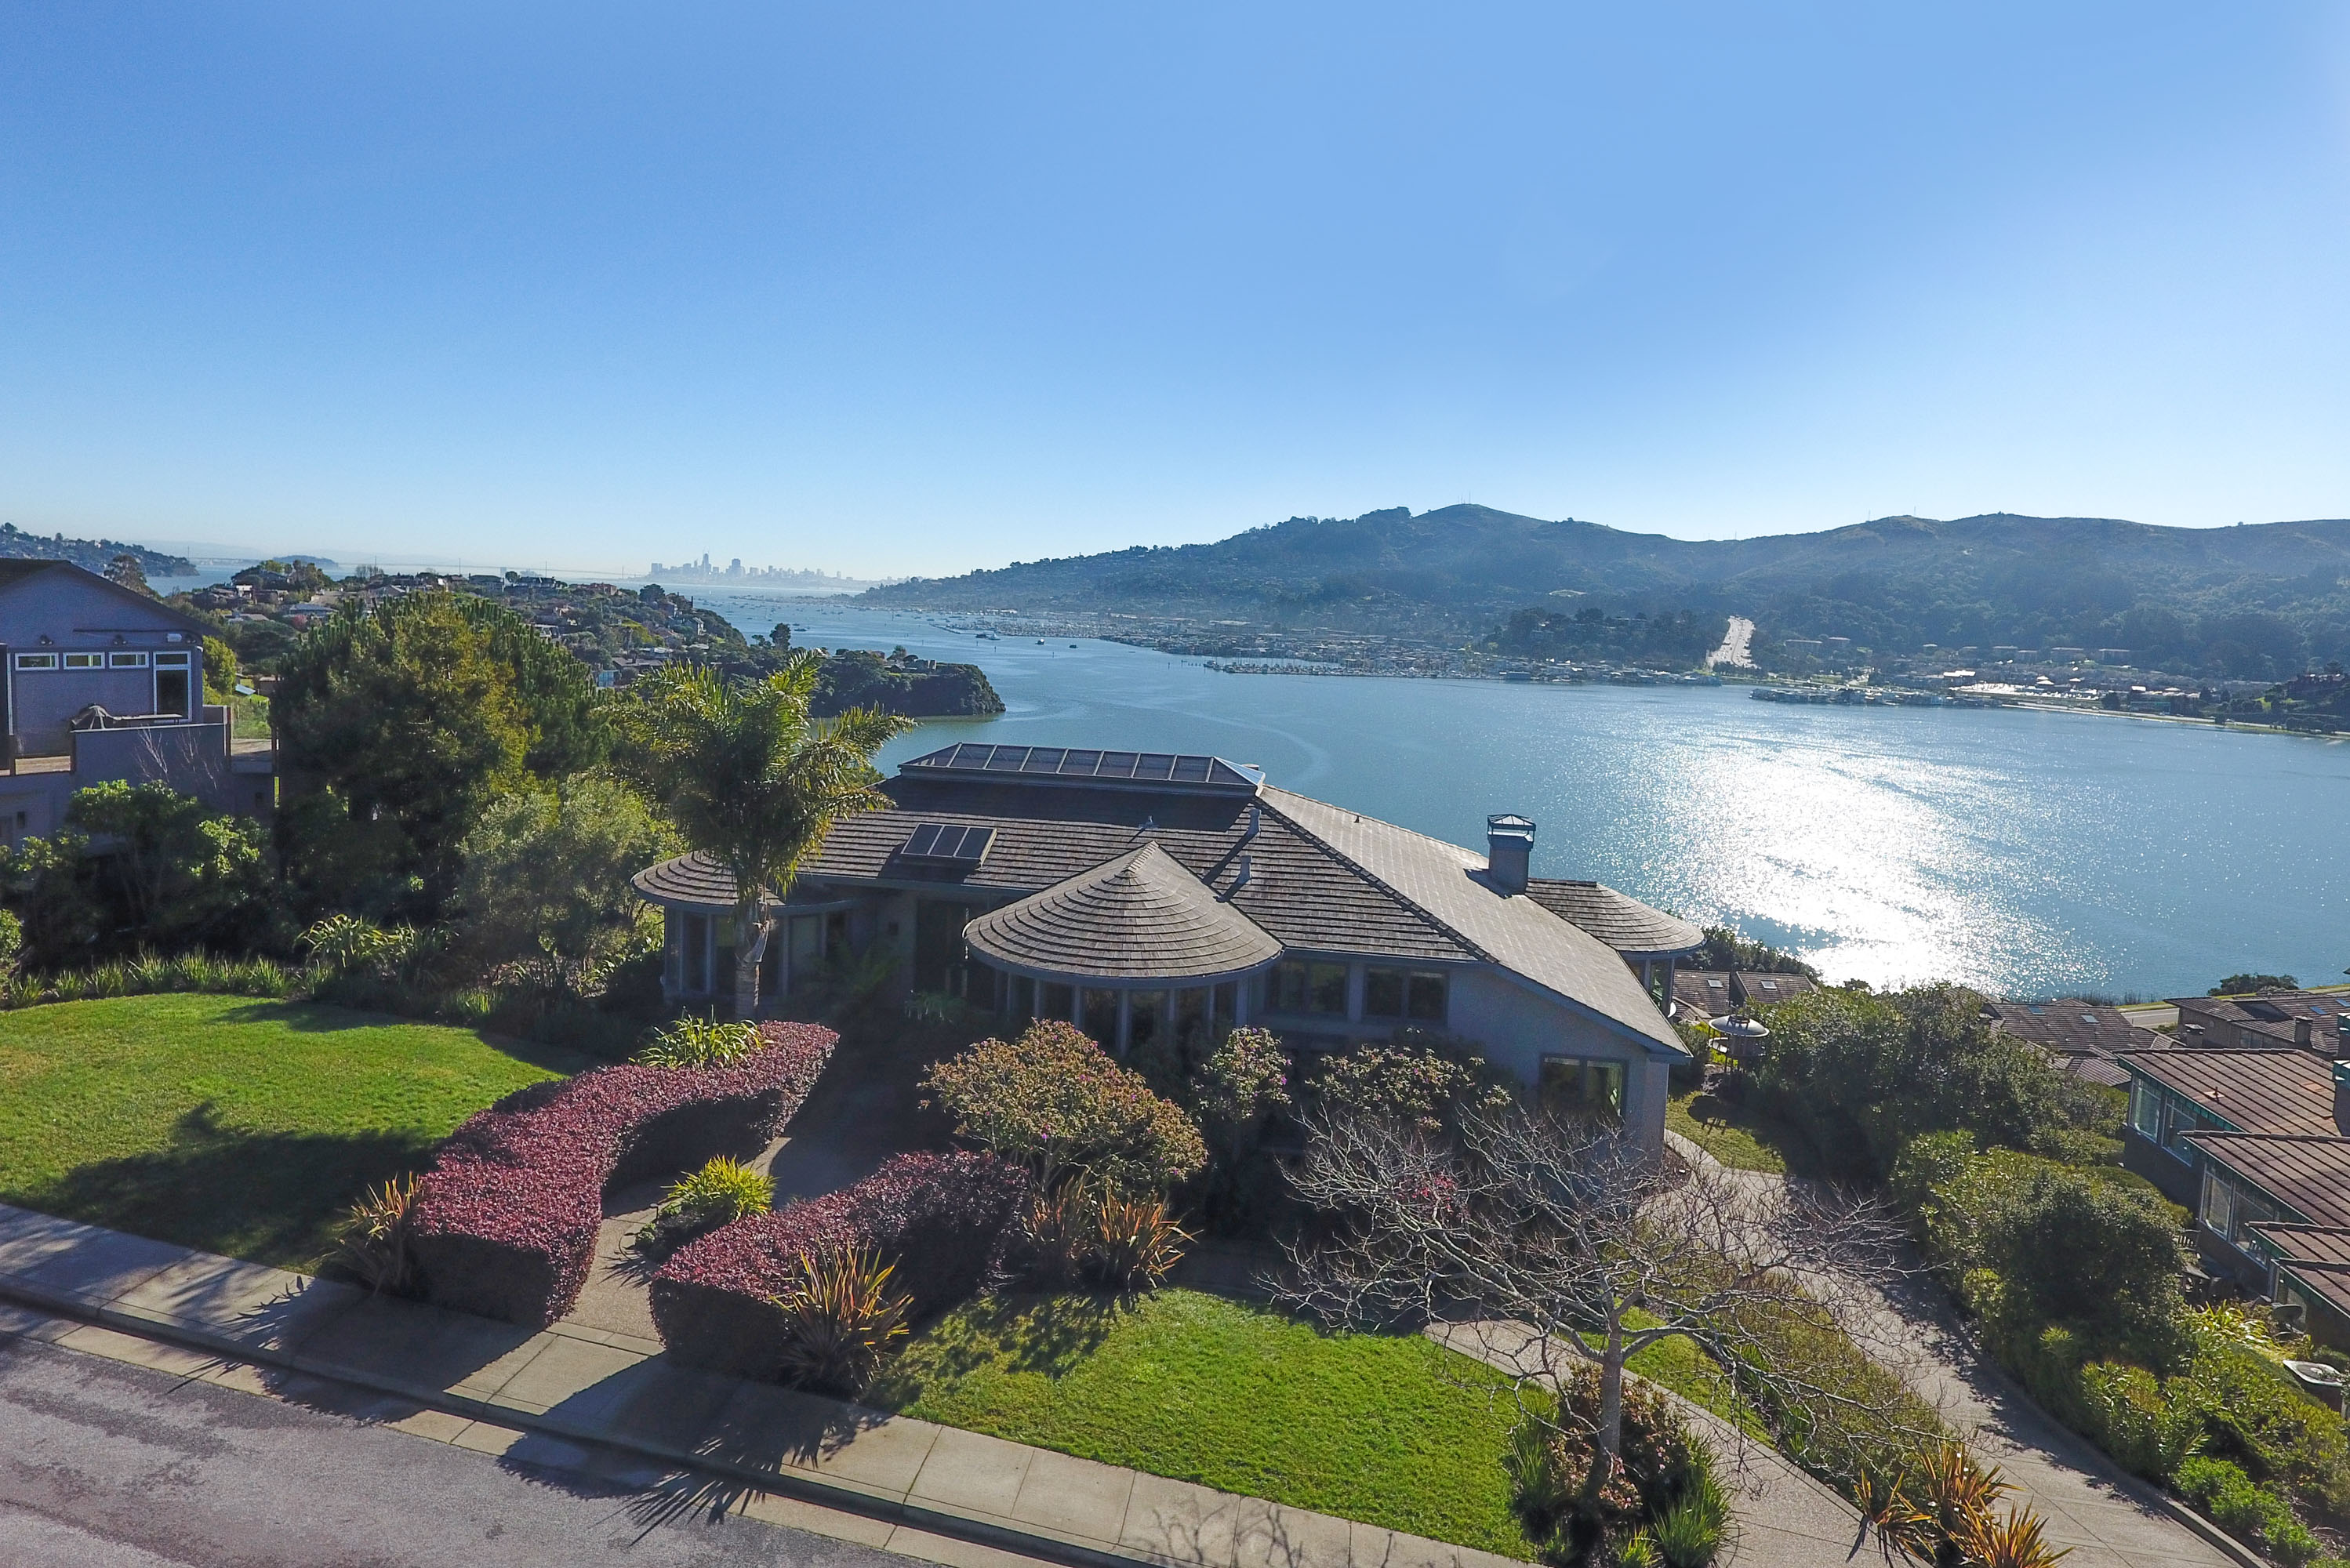 Single Family Home for Sale at Seminary Ridge--Location, Luxury and Views! 145 Chapel Dr Mill Valley, California 94941 United States